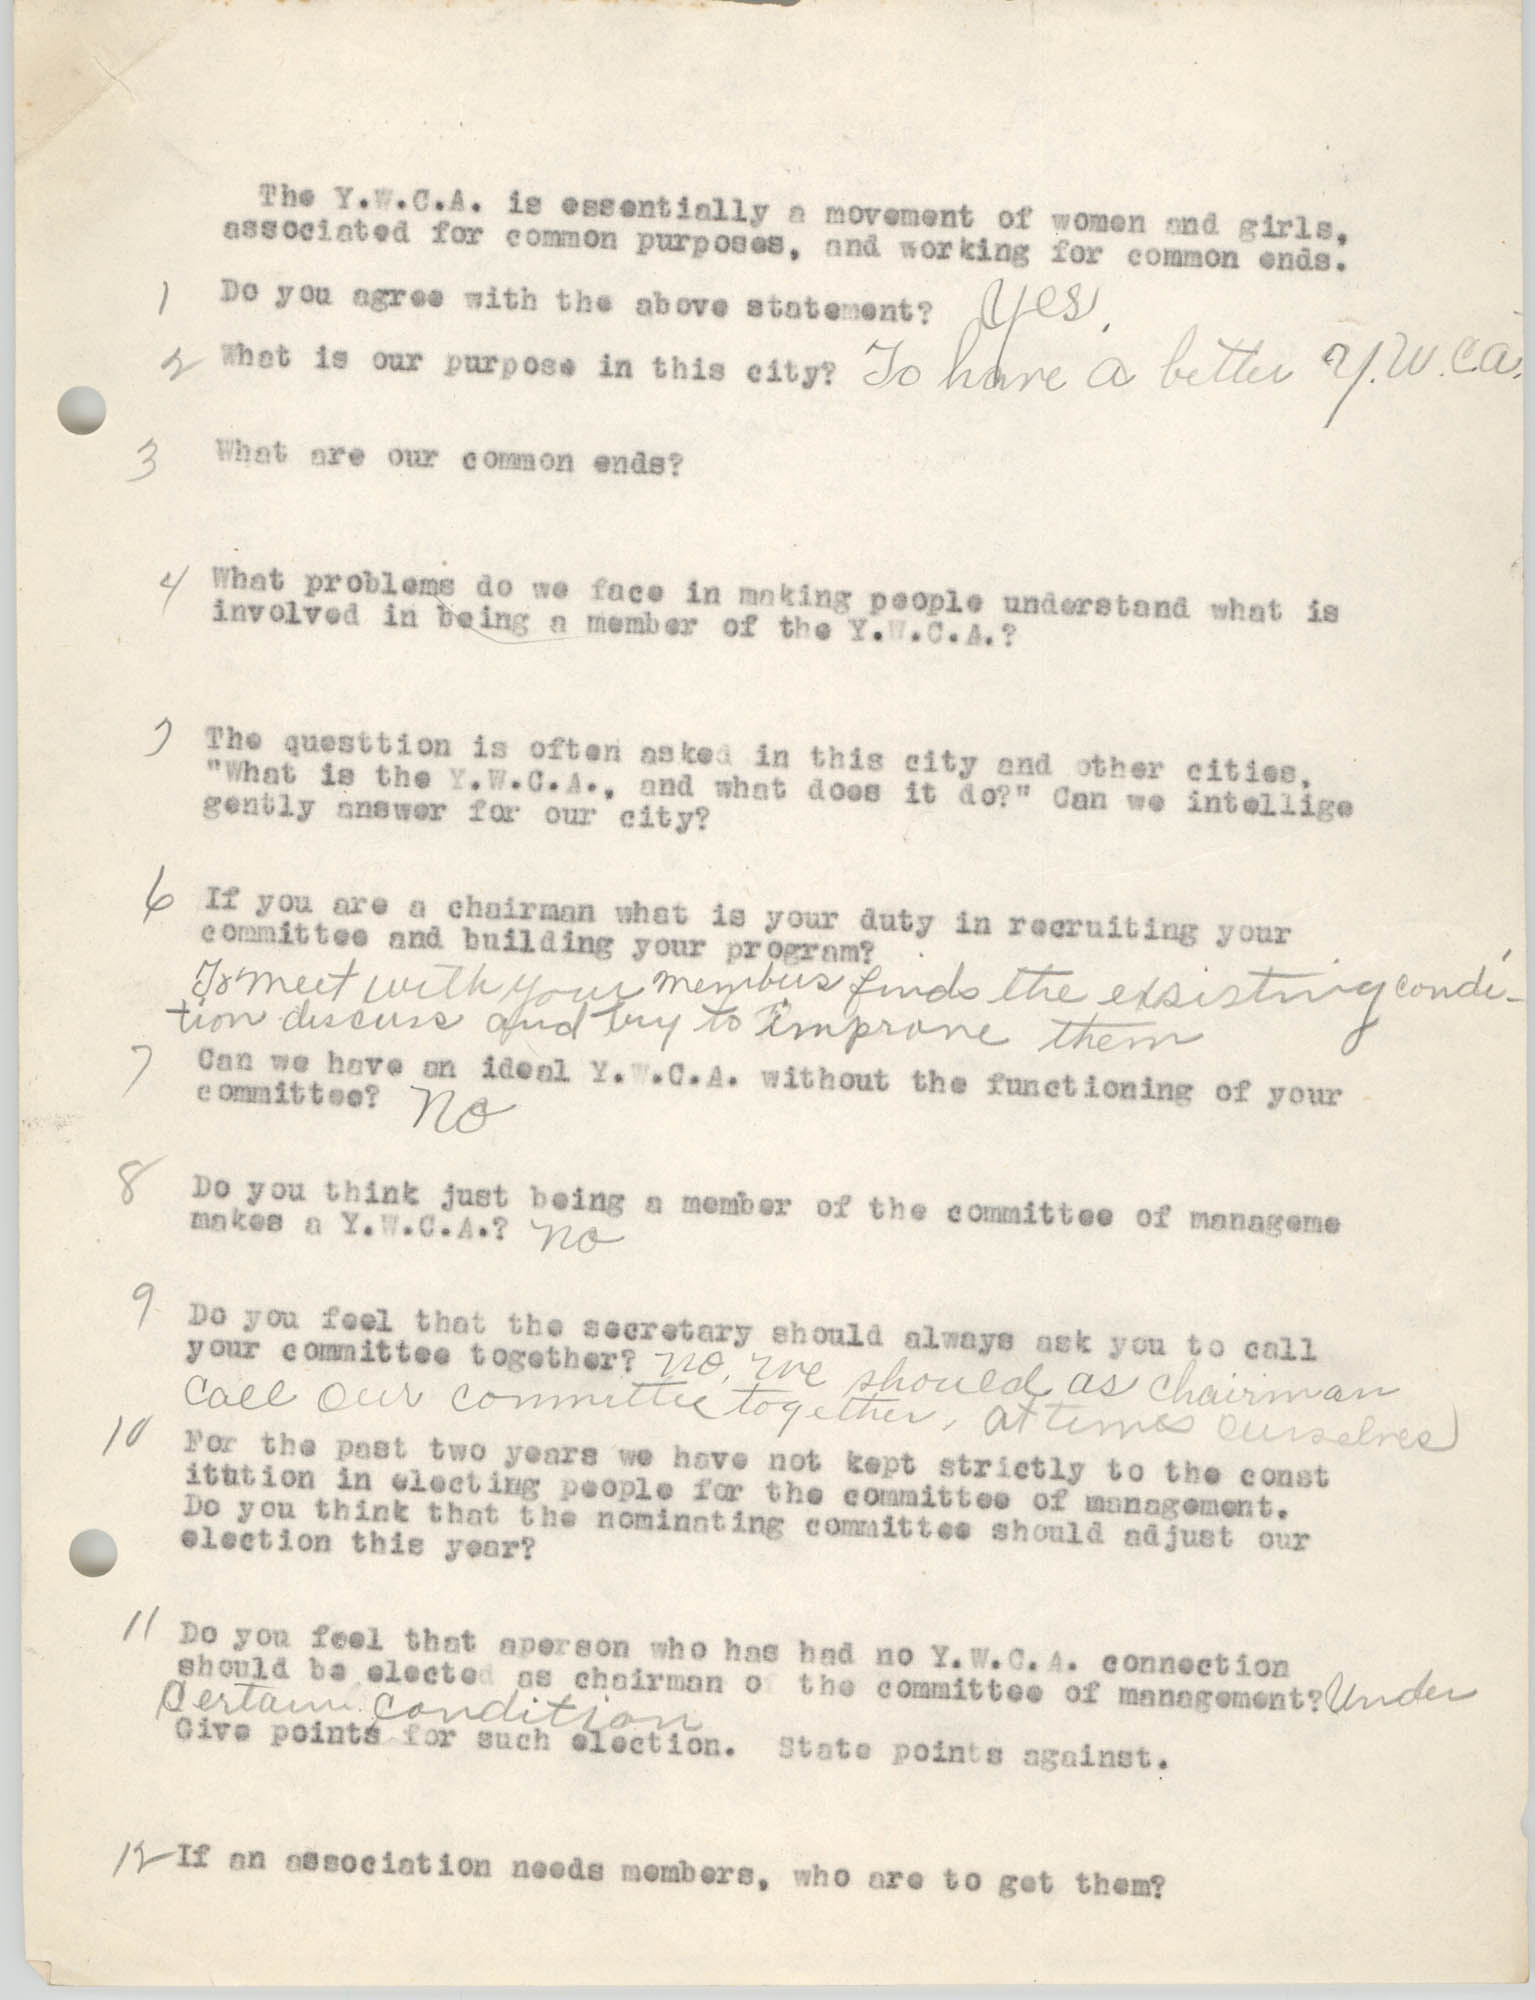 Coming Street Y.W.C.A., Completed Questionnaire Number 8, Page 1